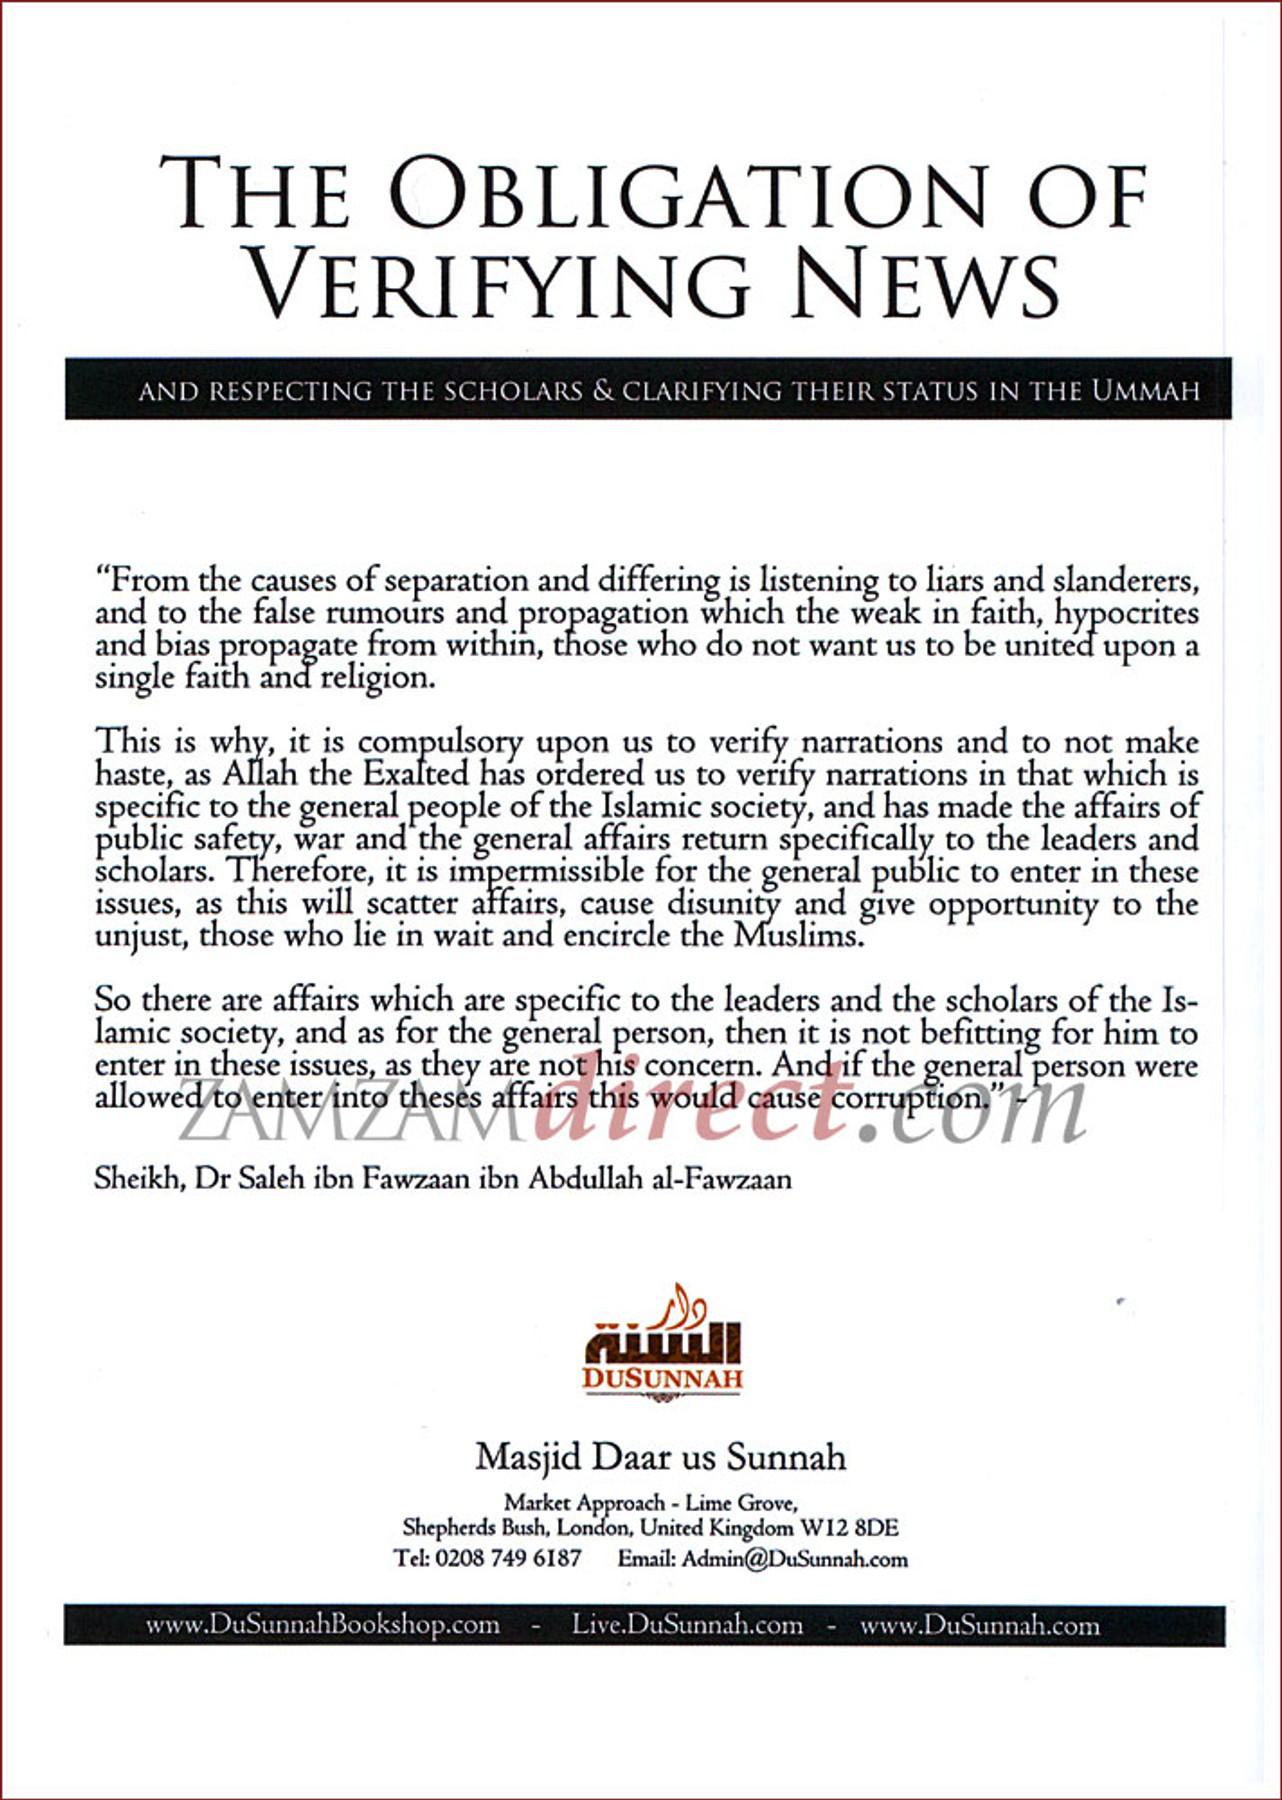 The Obligation of Verifying News (And Respecting The Scholars & Clarifying Their status In The Ummah)